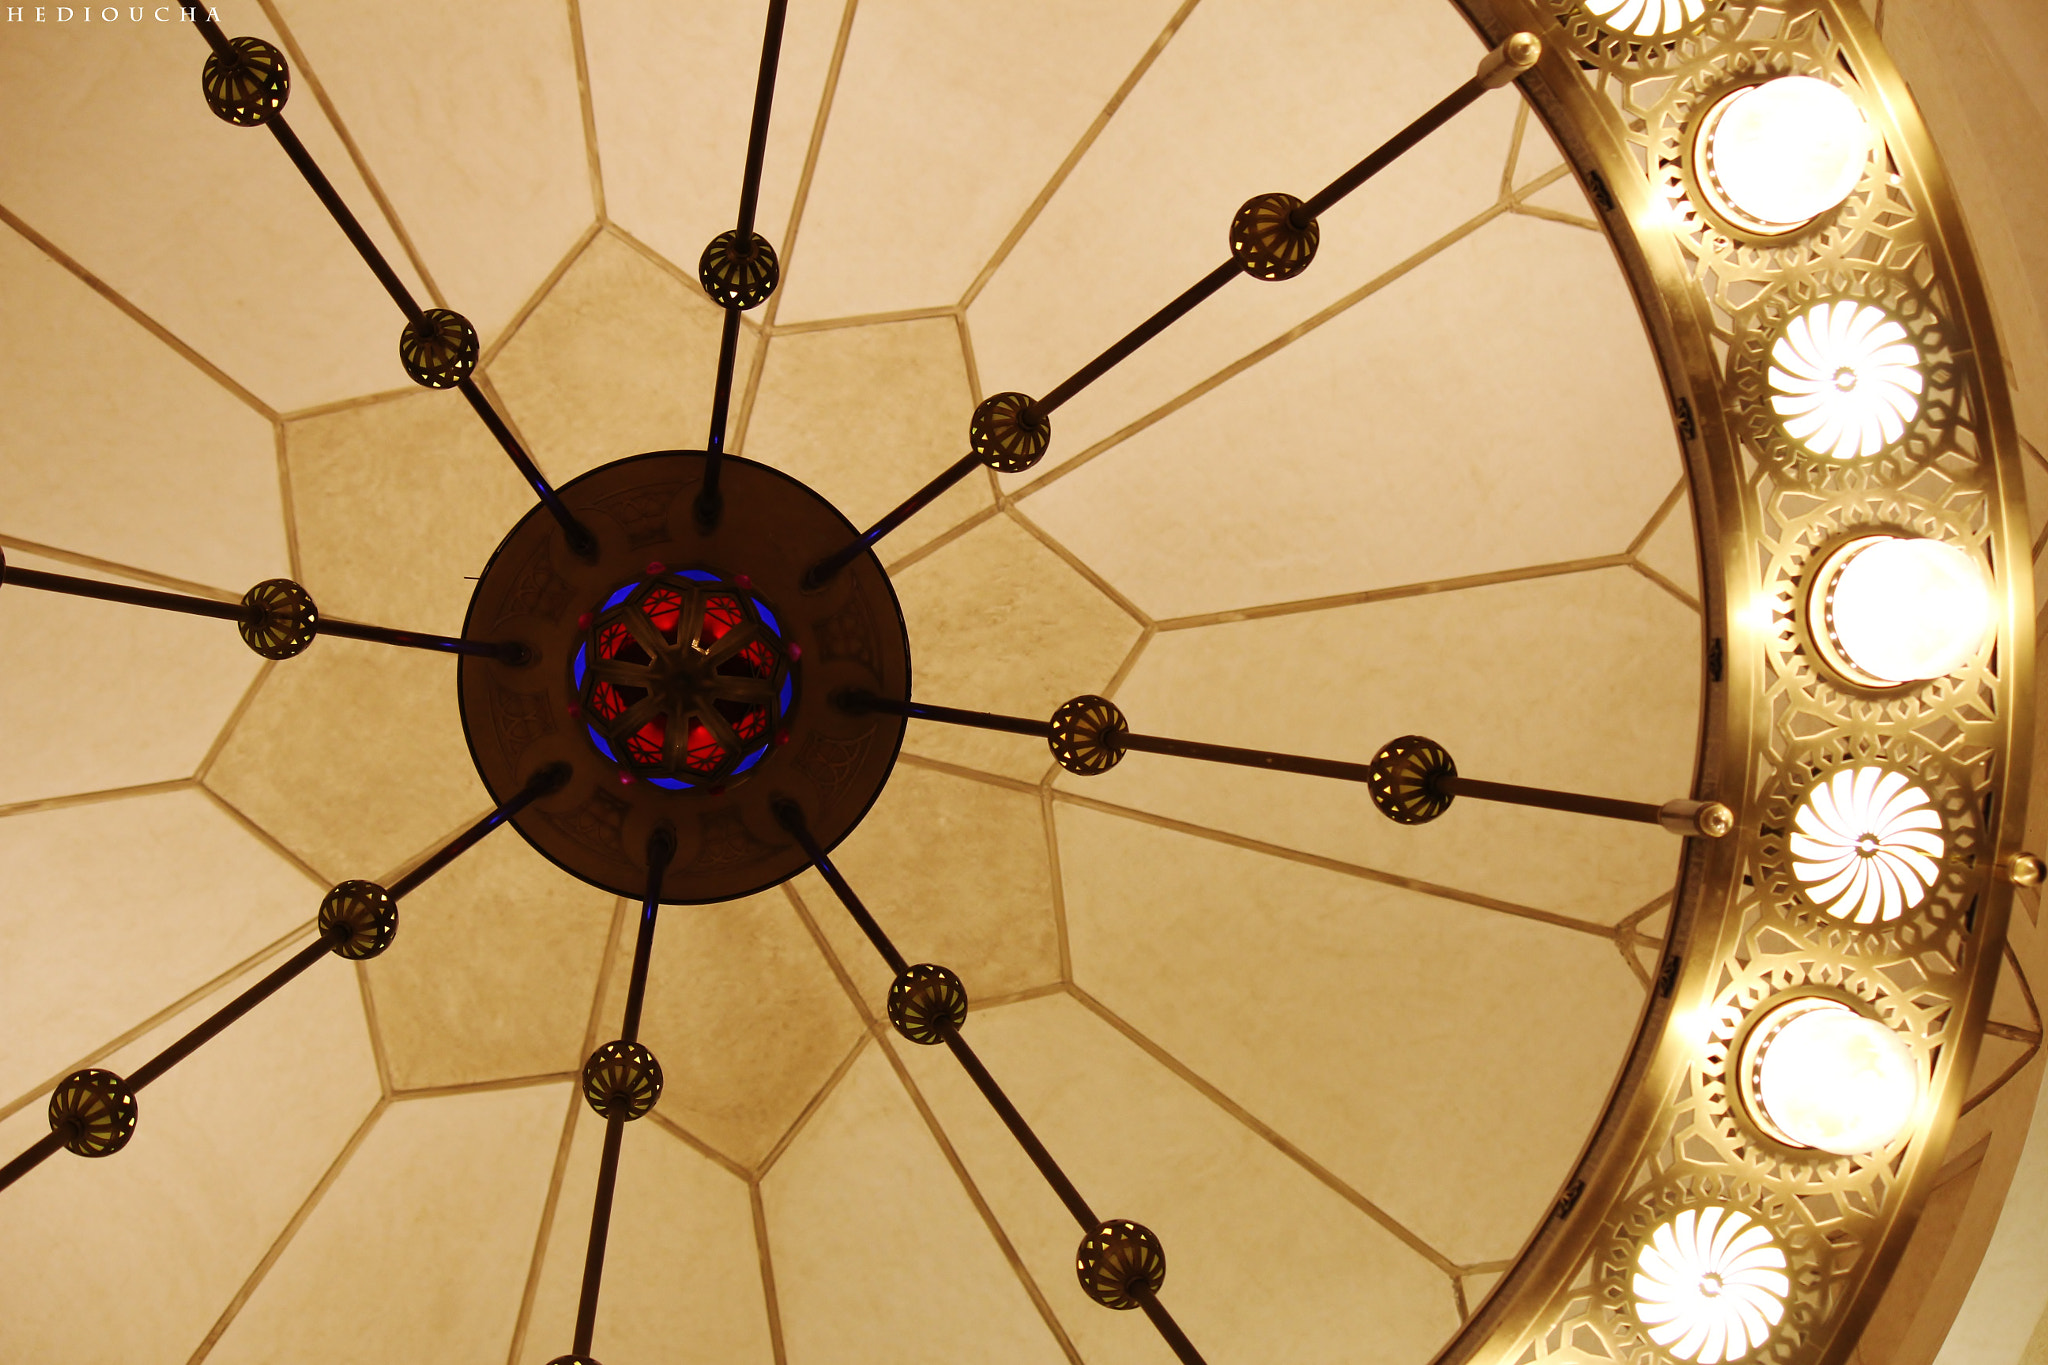 Photograph Plafond Lumineux by Hedia Hedioucha on 500px